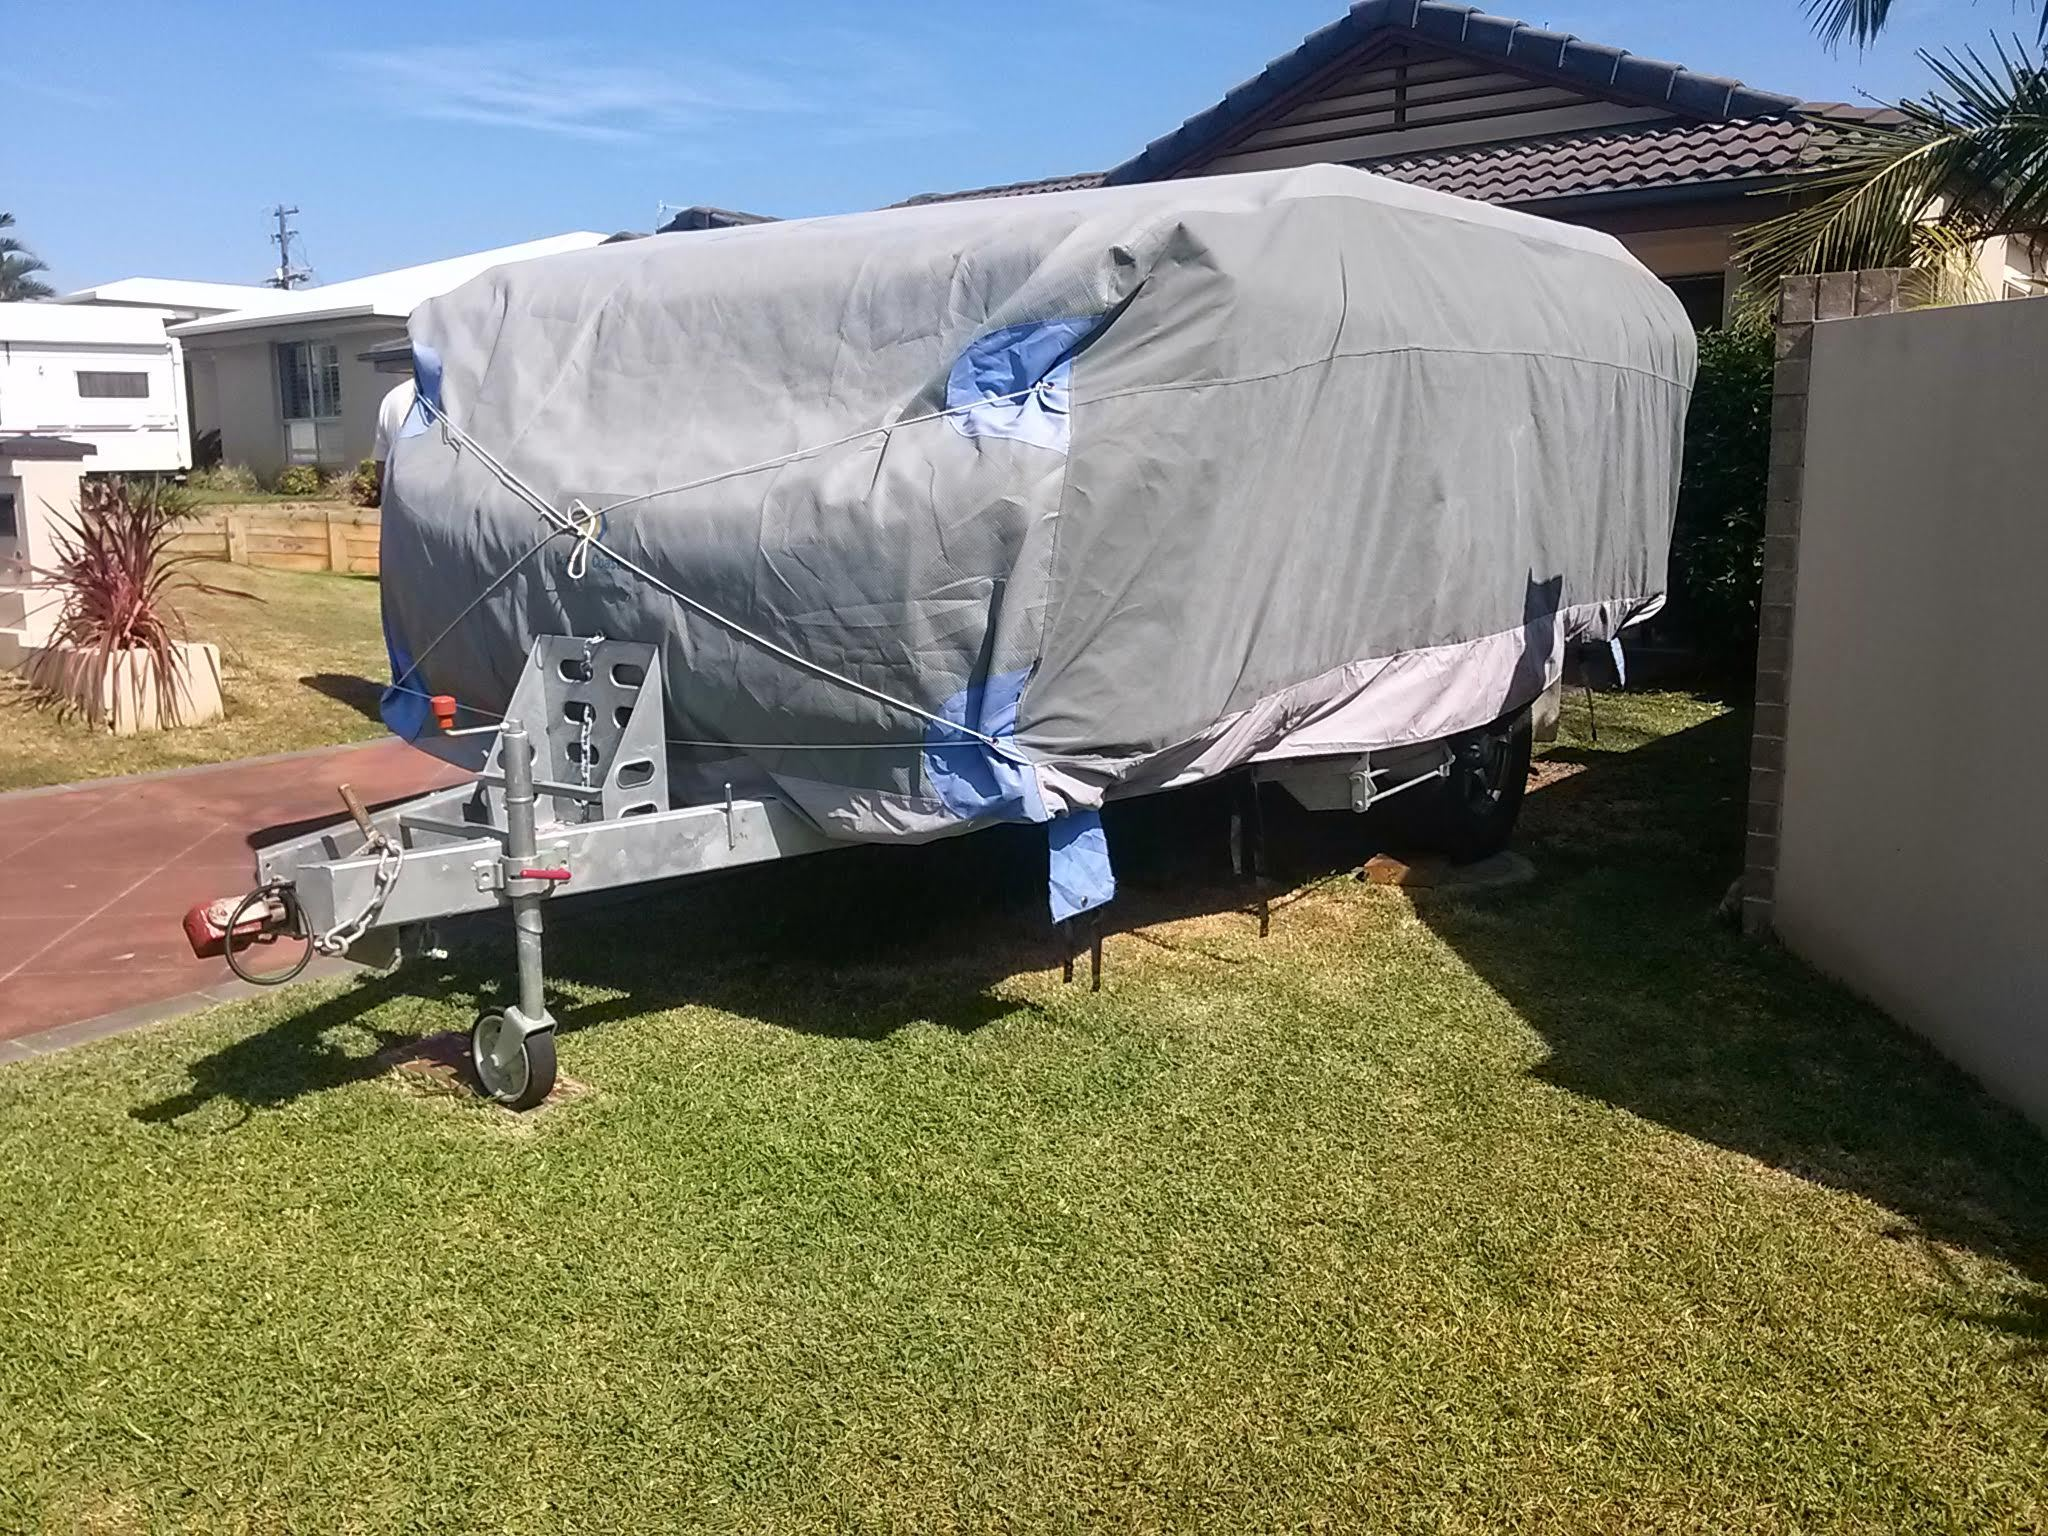 2012; Rego October 2016. Its had minimal use and has not gone off road. No cooking (mainly bbq),no smoking and no pets inside caravan. Annexe has full sides & mesh floor. Also has a full R/H annexe for extra room .Fitted with Jayco roof rack & comes with a full ...